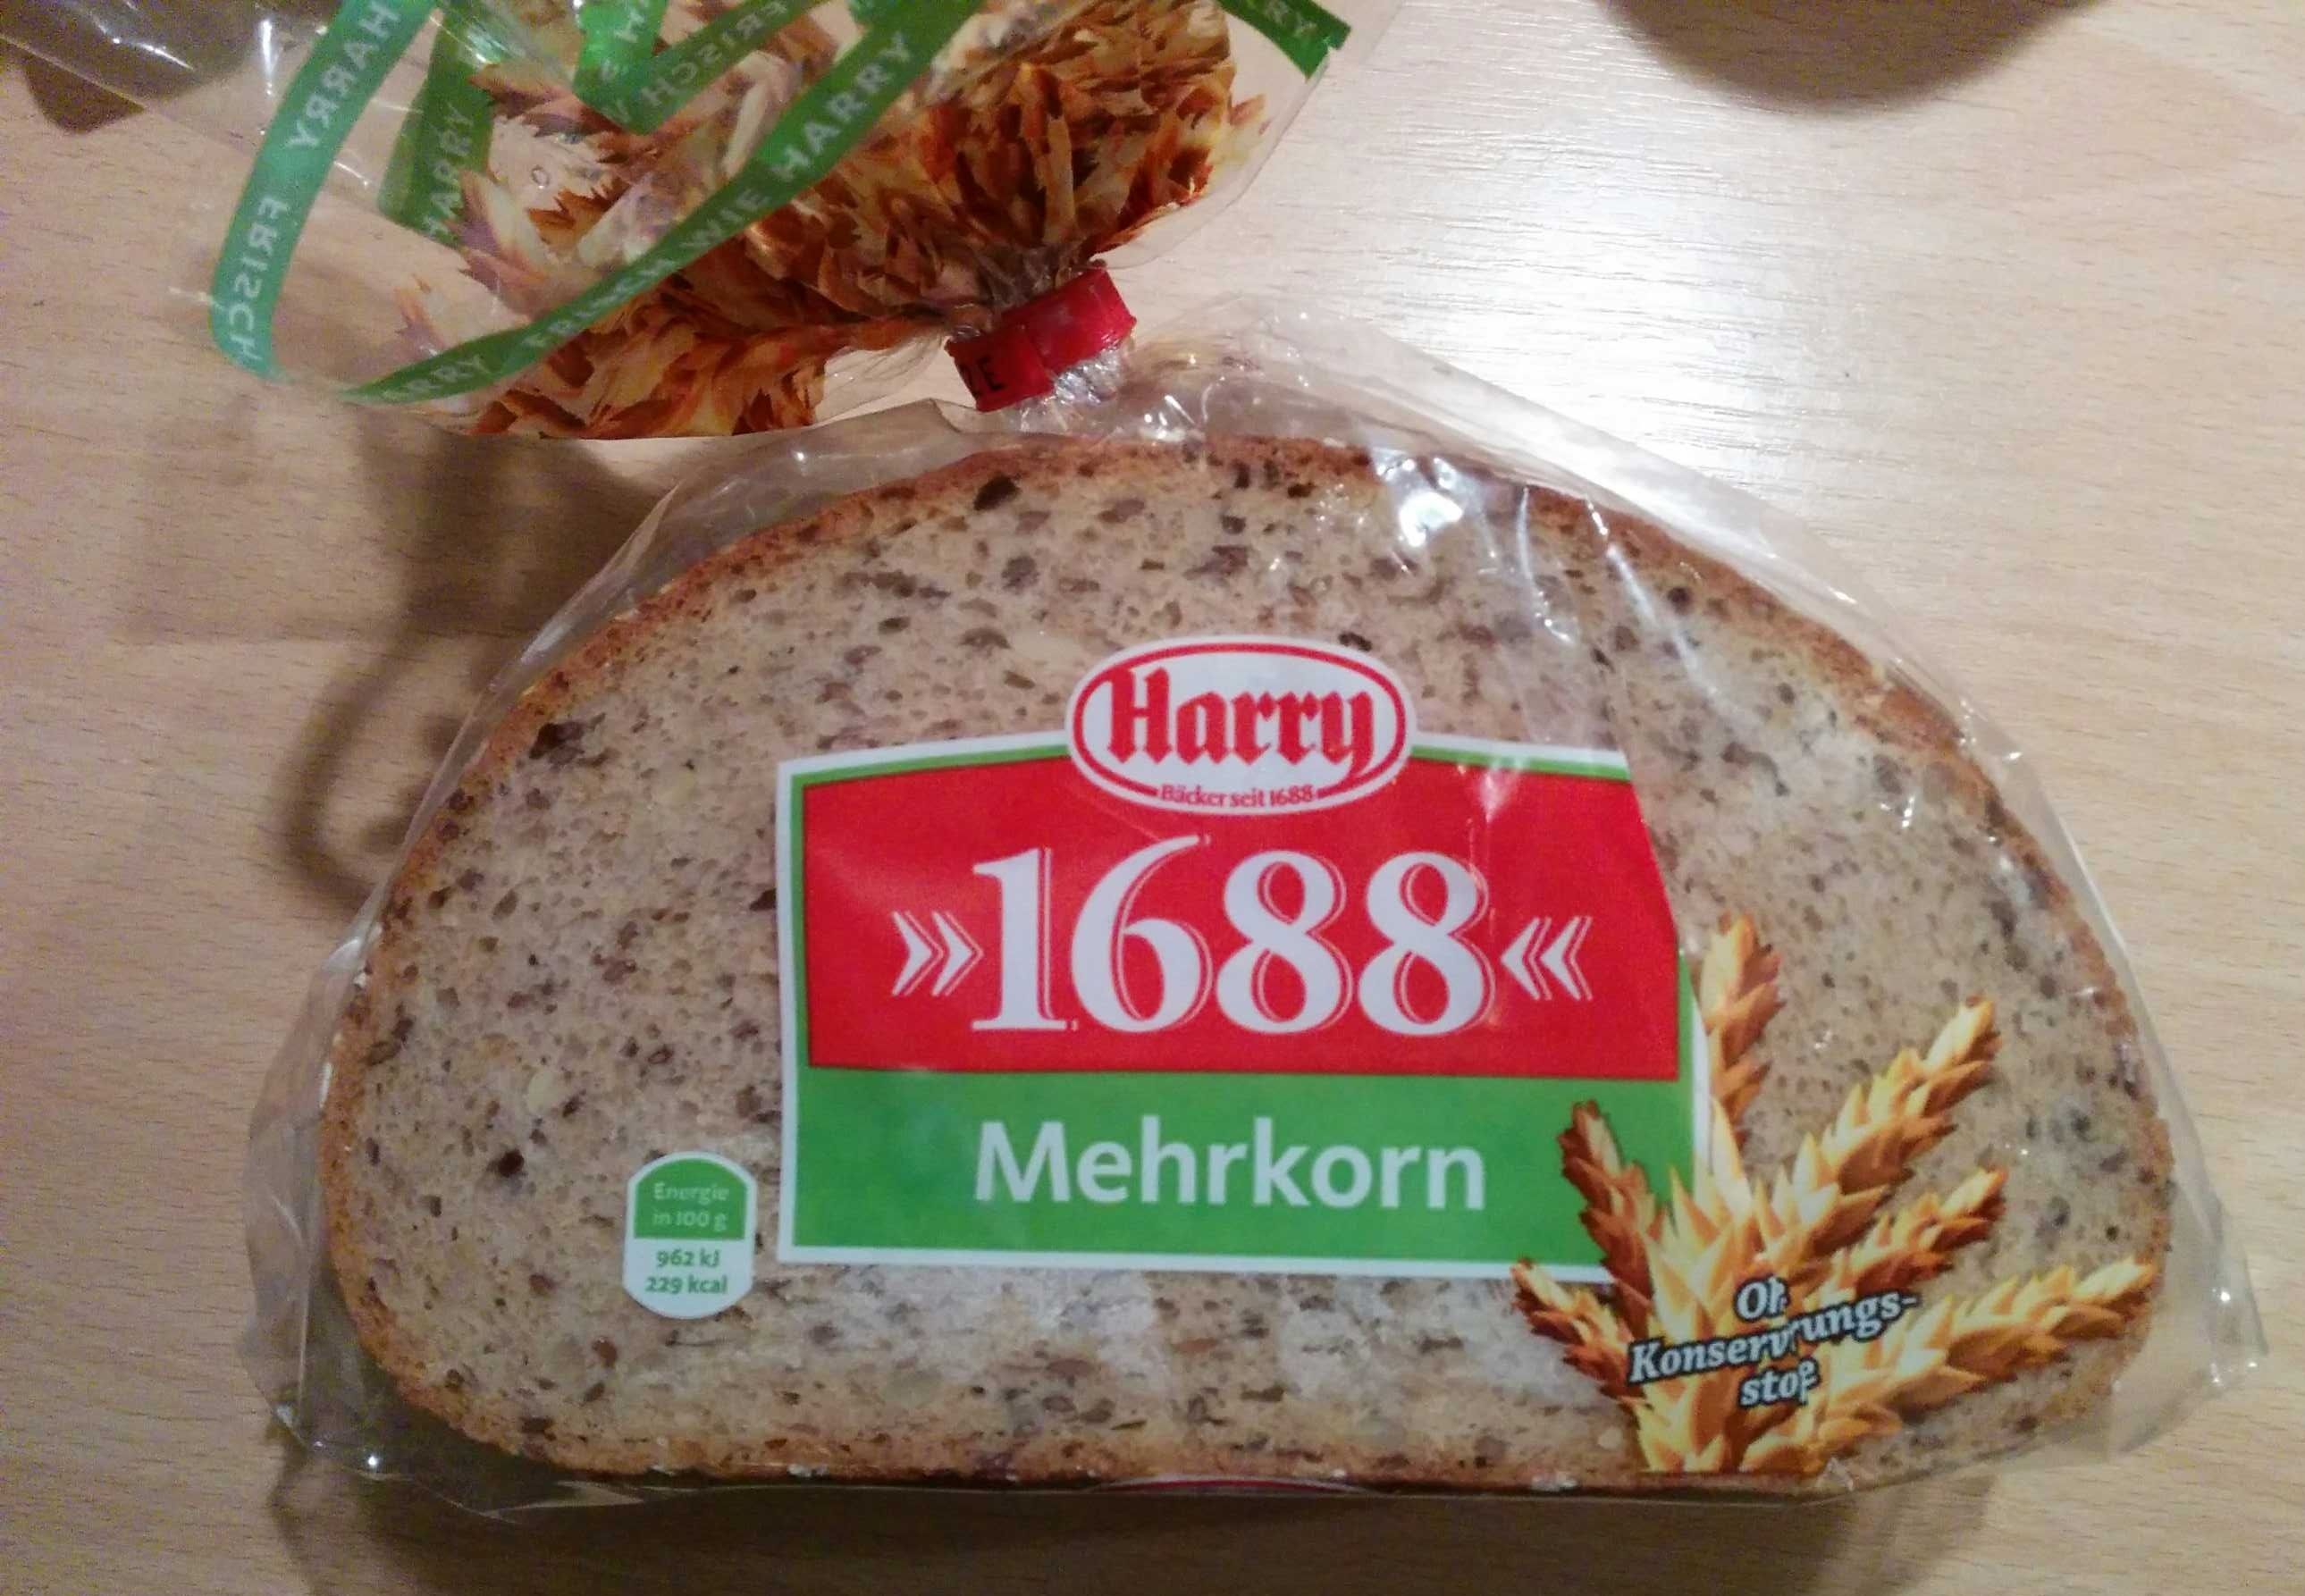 1688 Mehrkorn - Product